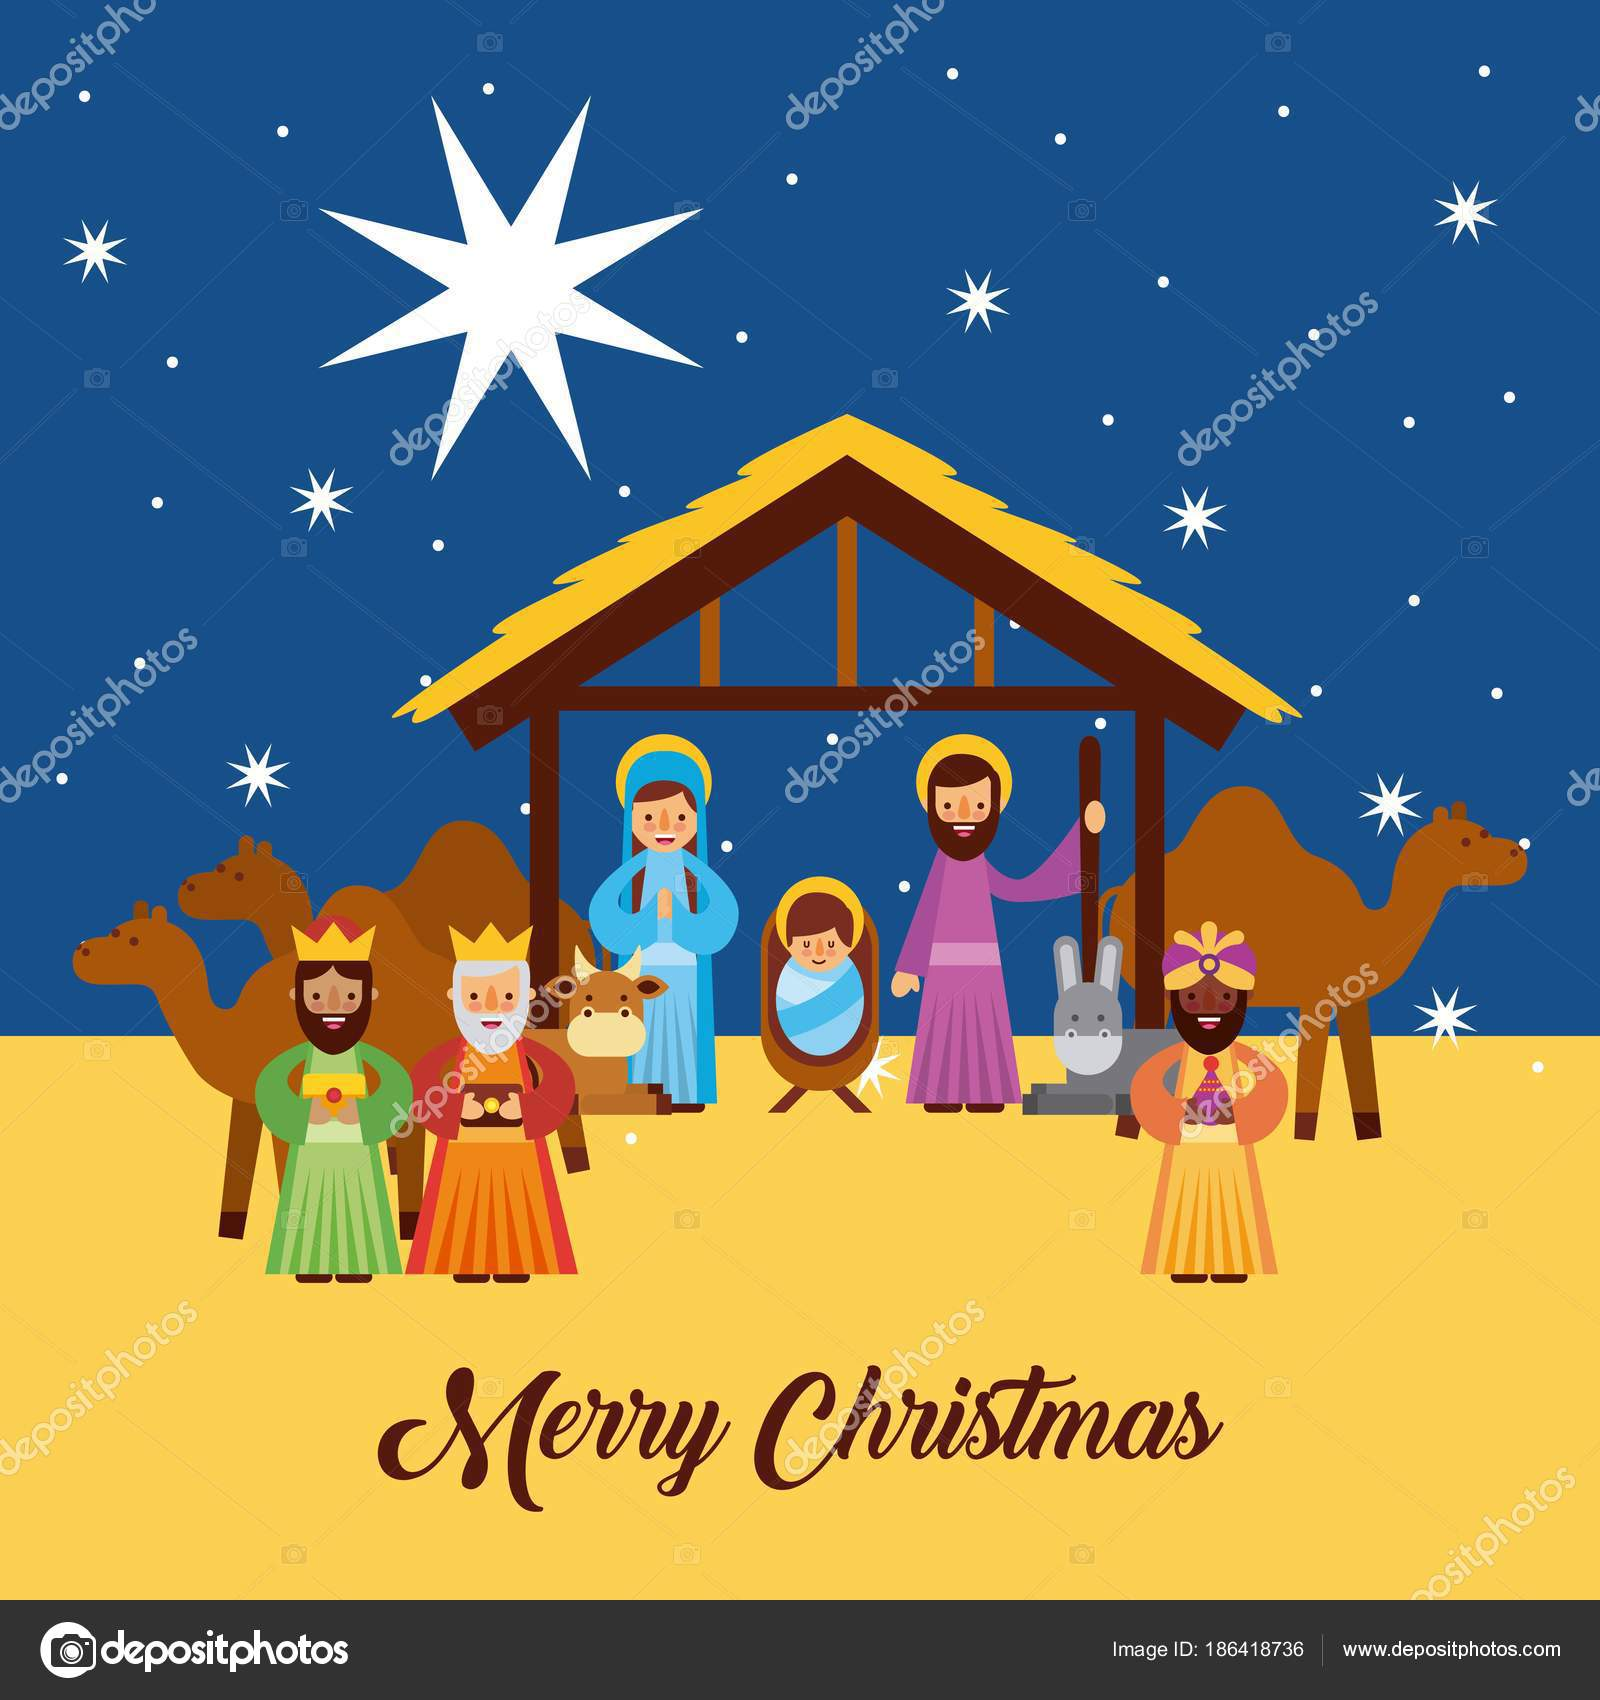 Merry Christmas Greetings With Jesus Born In Manger Joseph And Mary